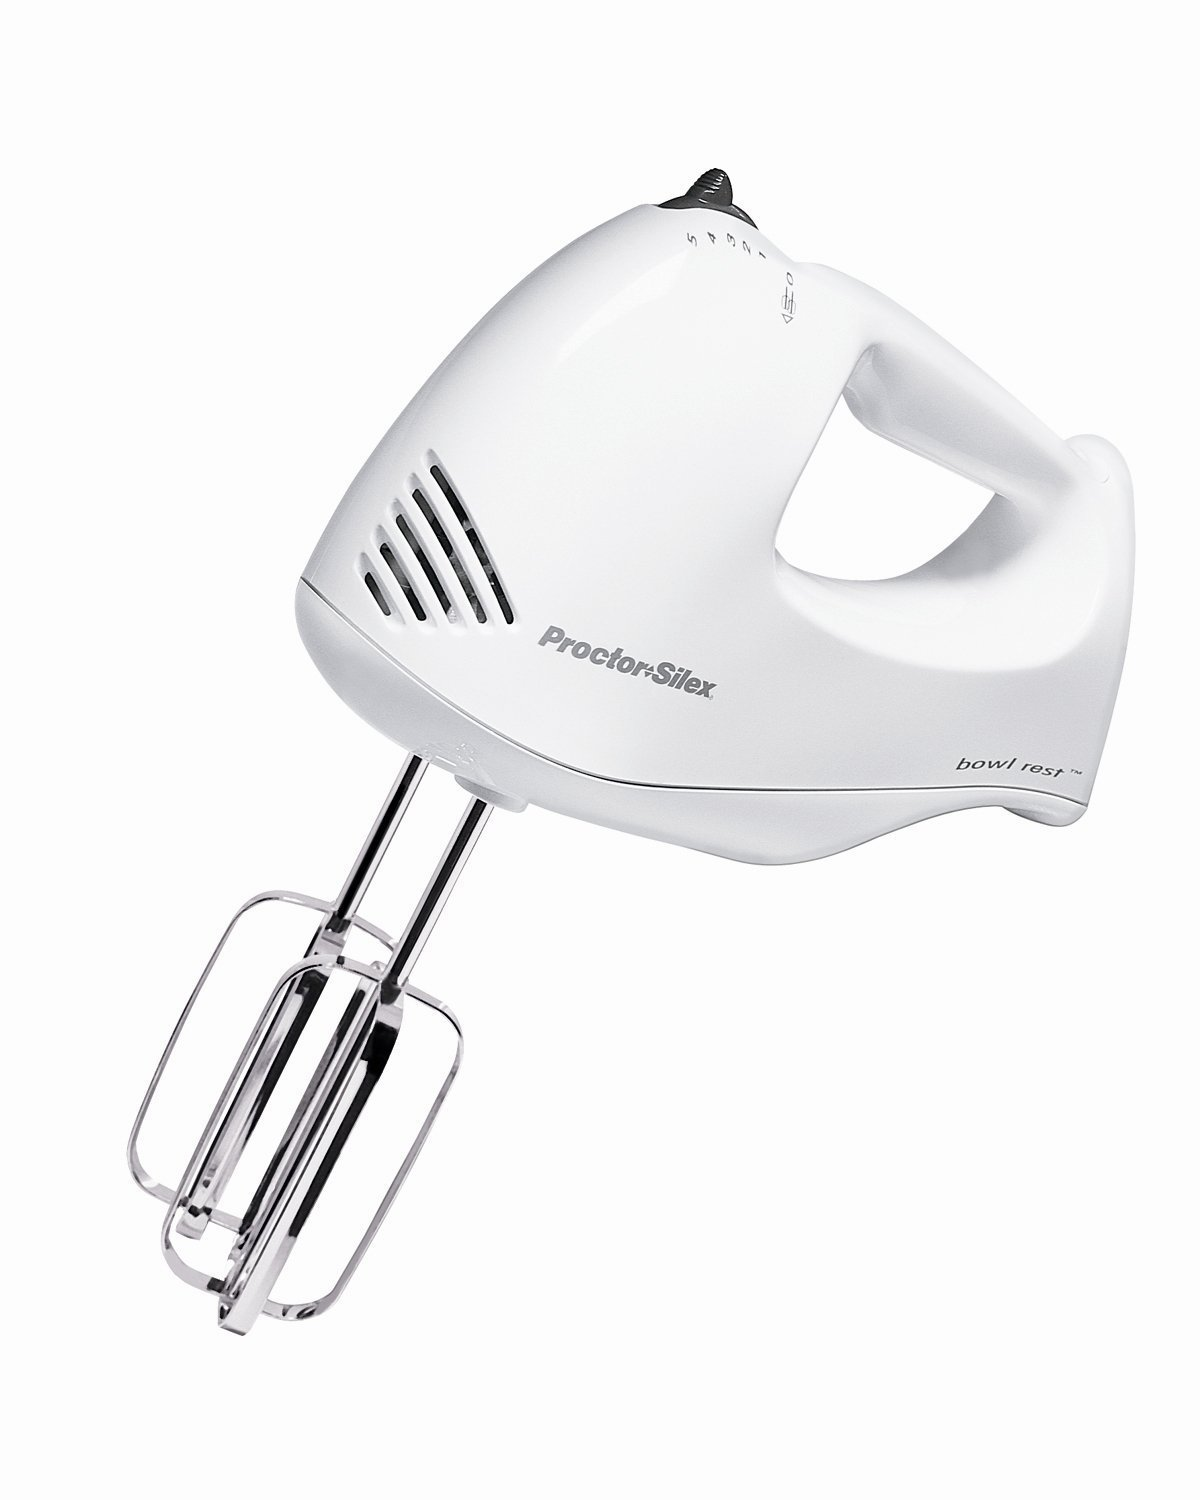 Bowl Rest™ Hand Mixer & Case Proctor Silex 62545